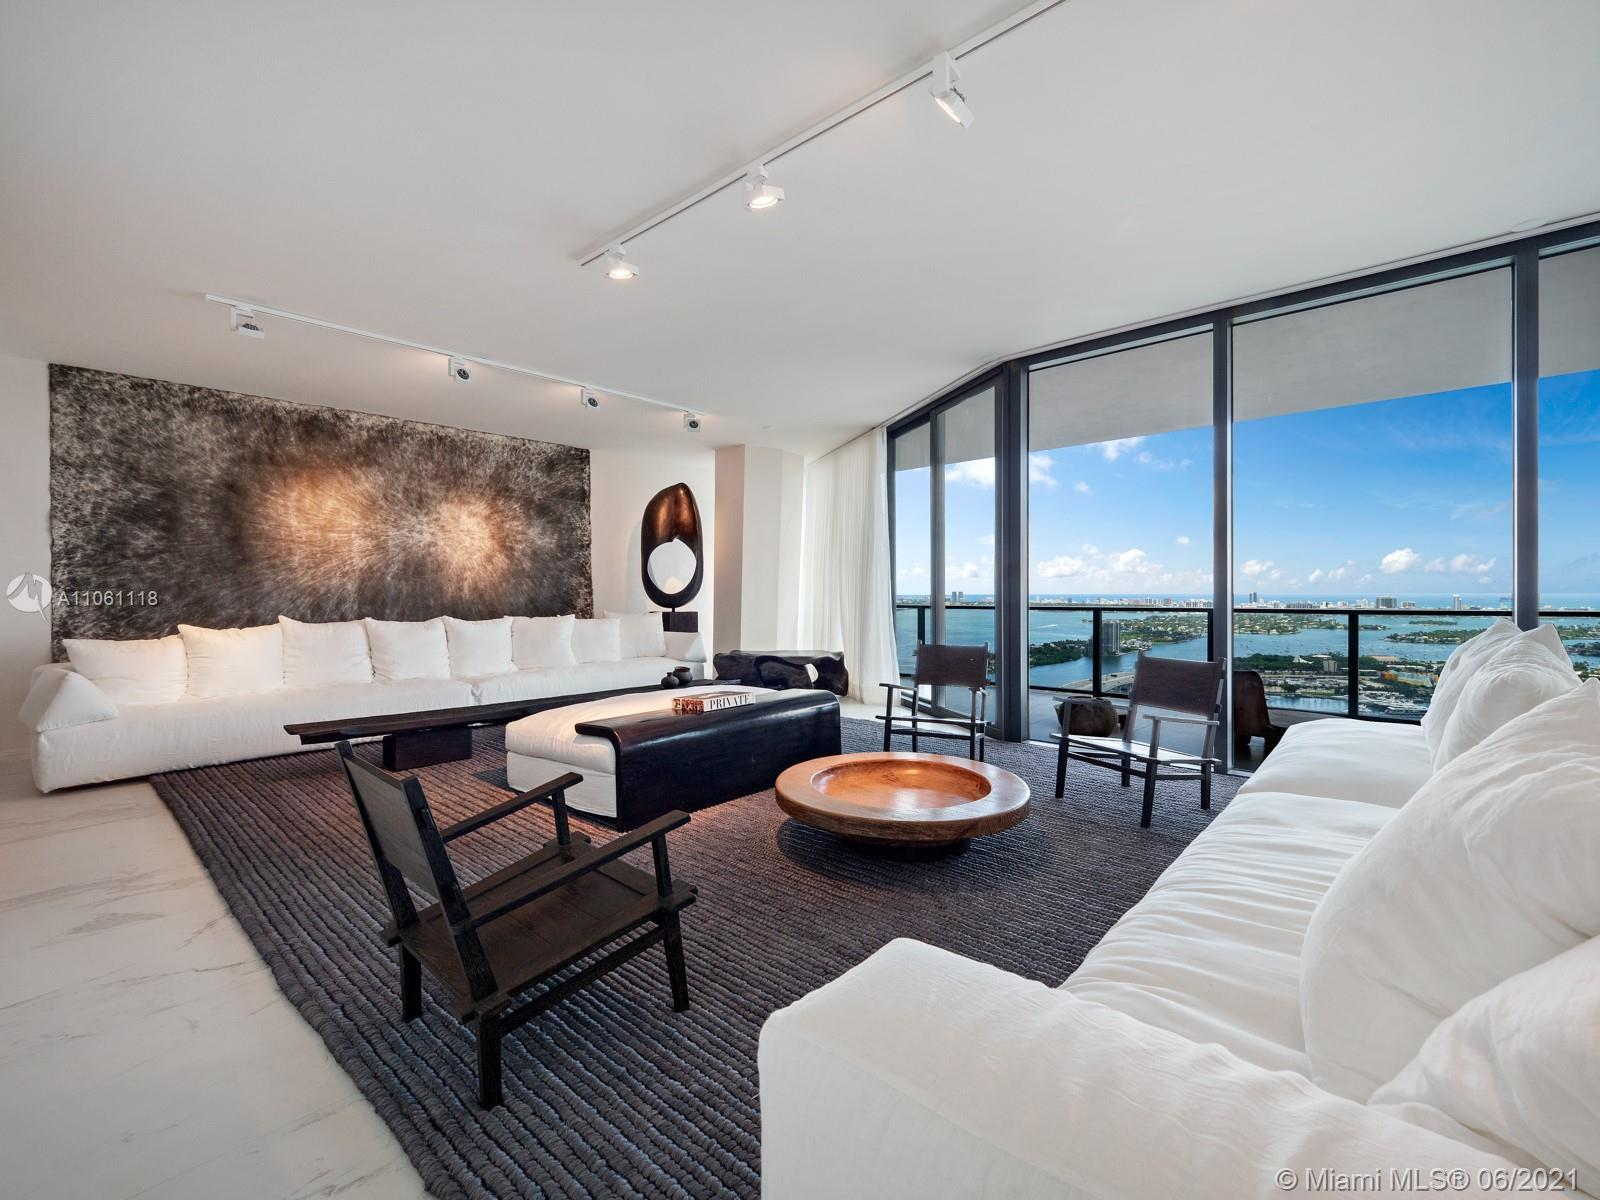 A true design inside Miami's most exclusive residential tower - One Thousand Museum Residence 4401 i